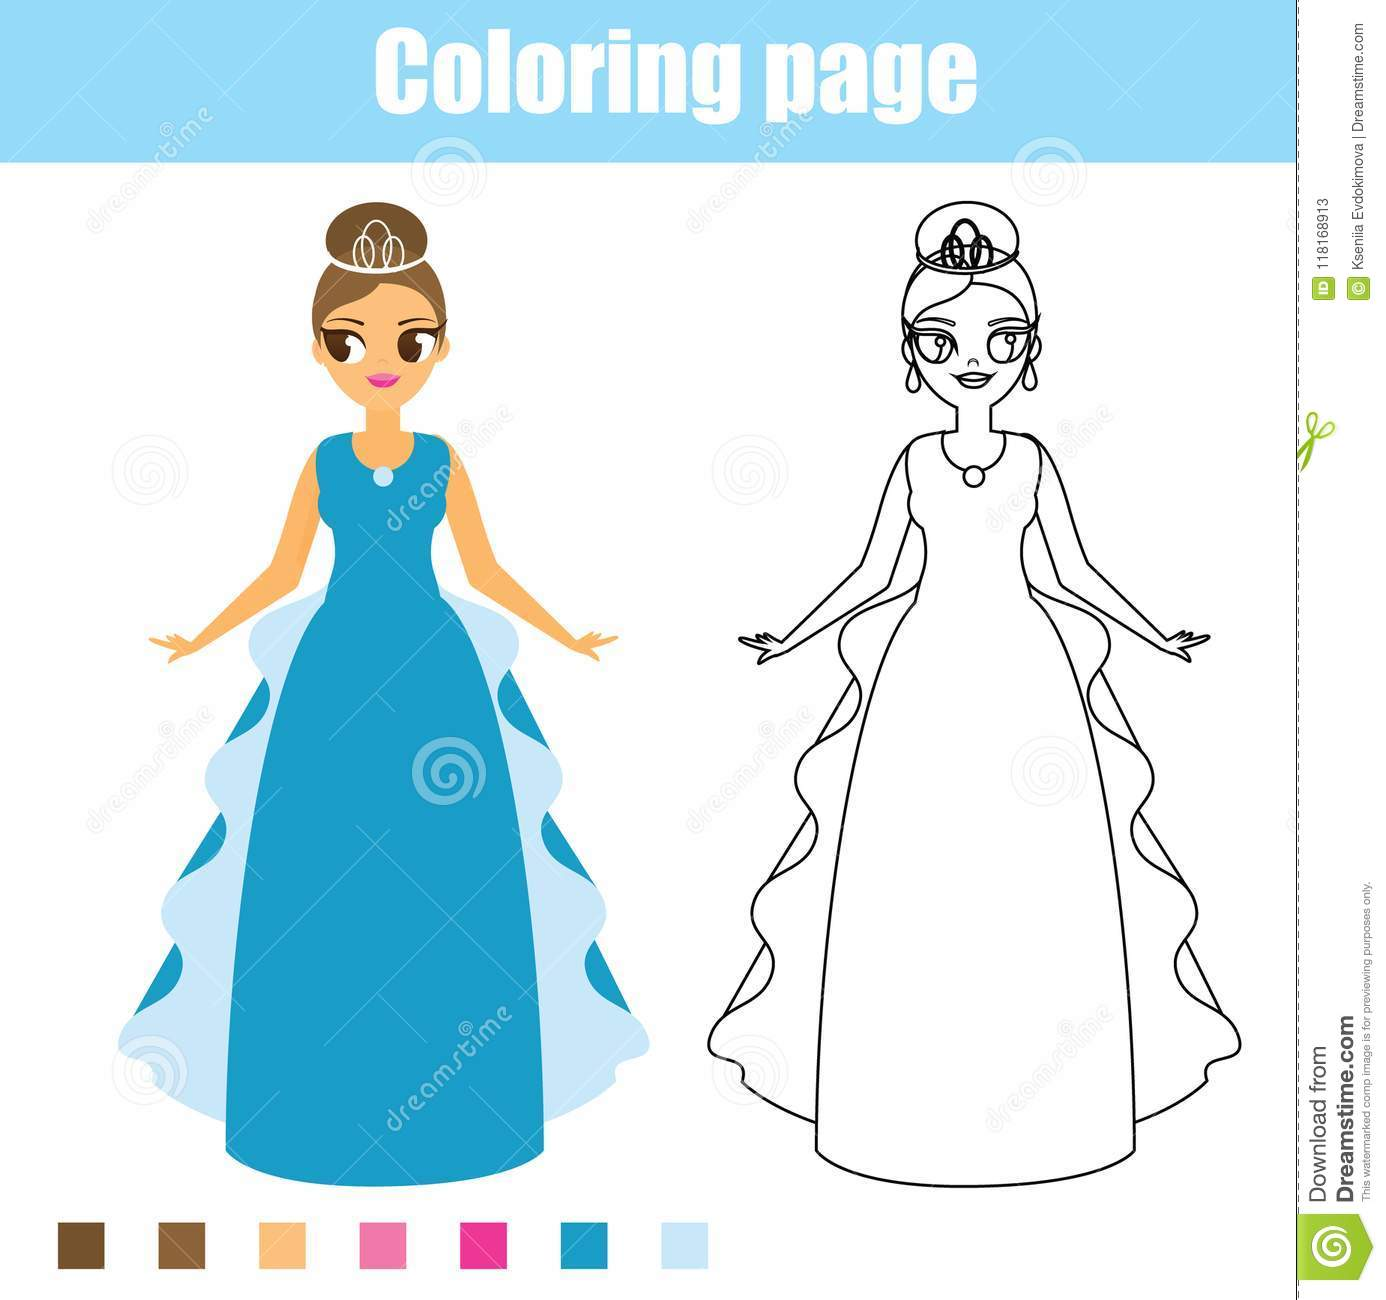 Coloring Page Princess Educational Game Printable Activity For Toddlers